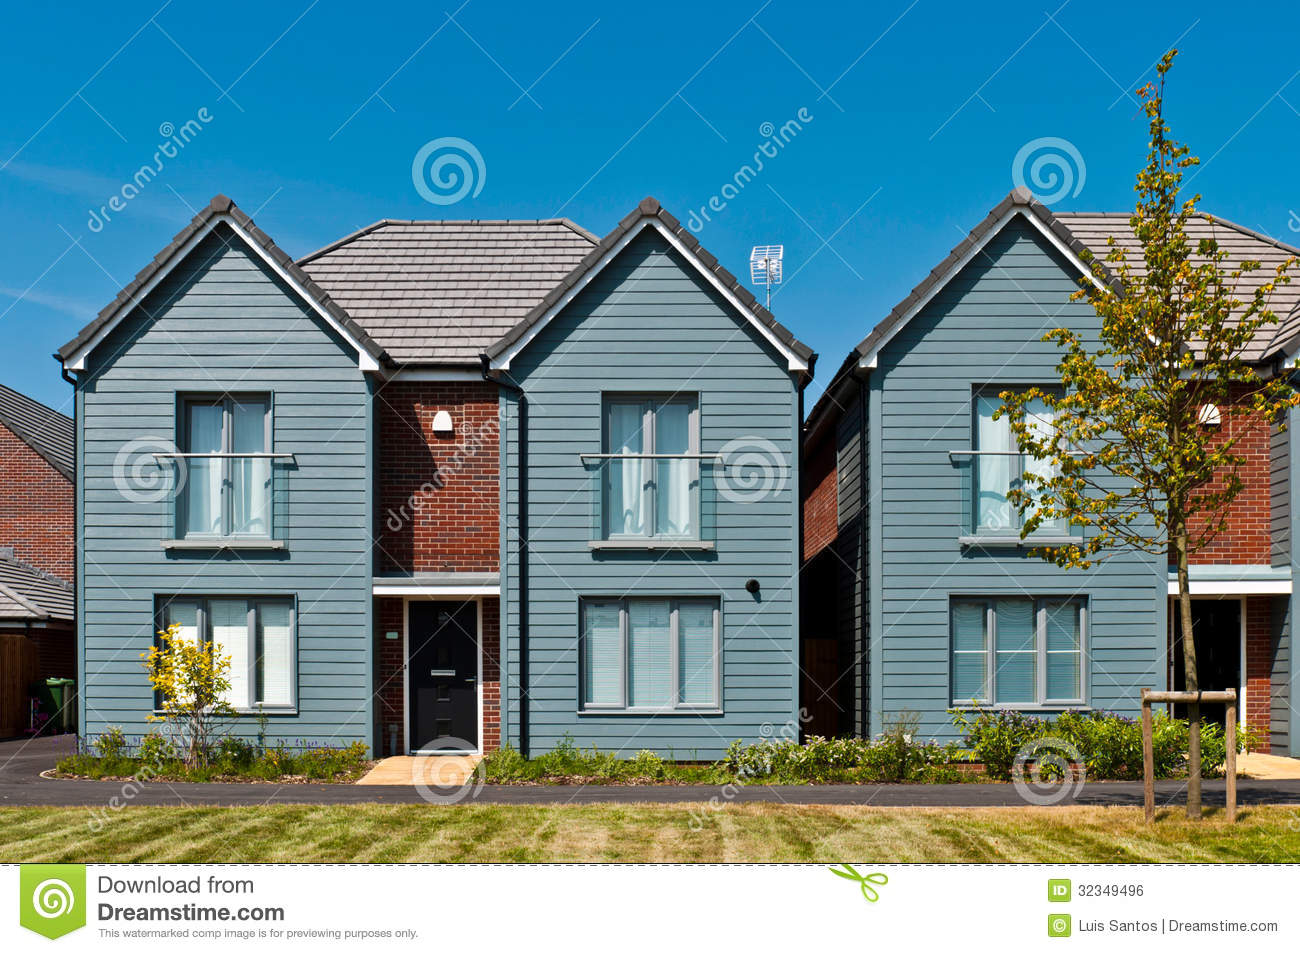 British house royalty free stock image image 32349496 for Residential house styles